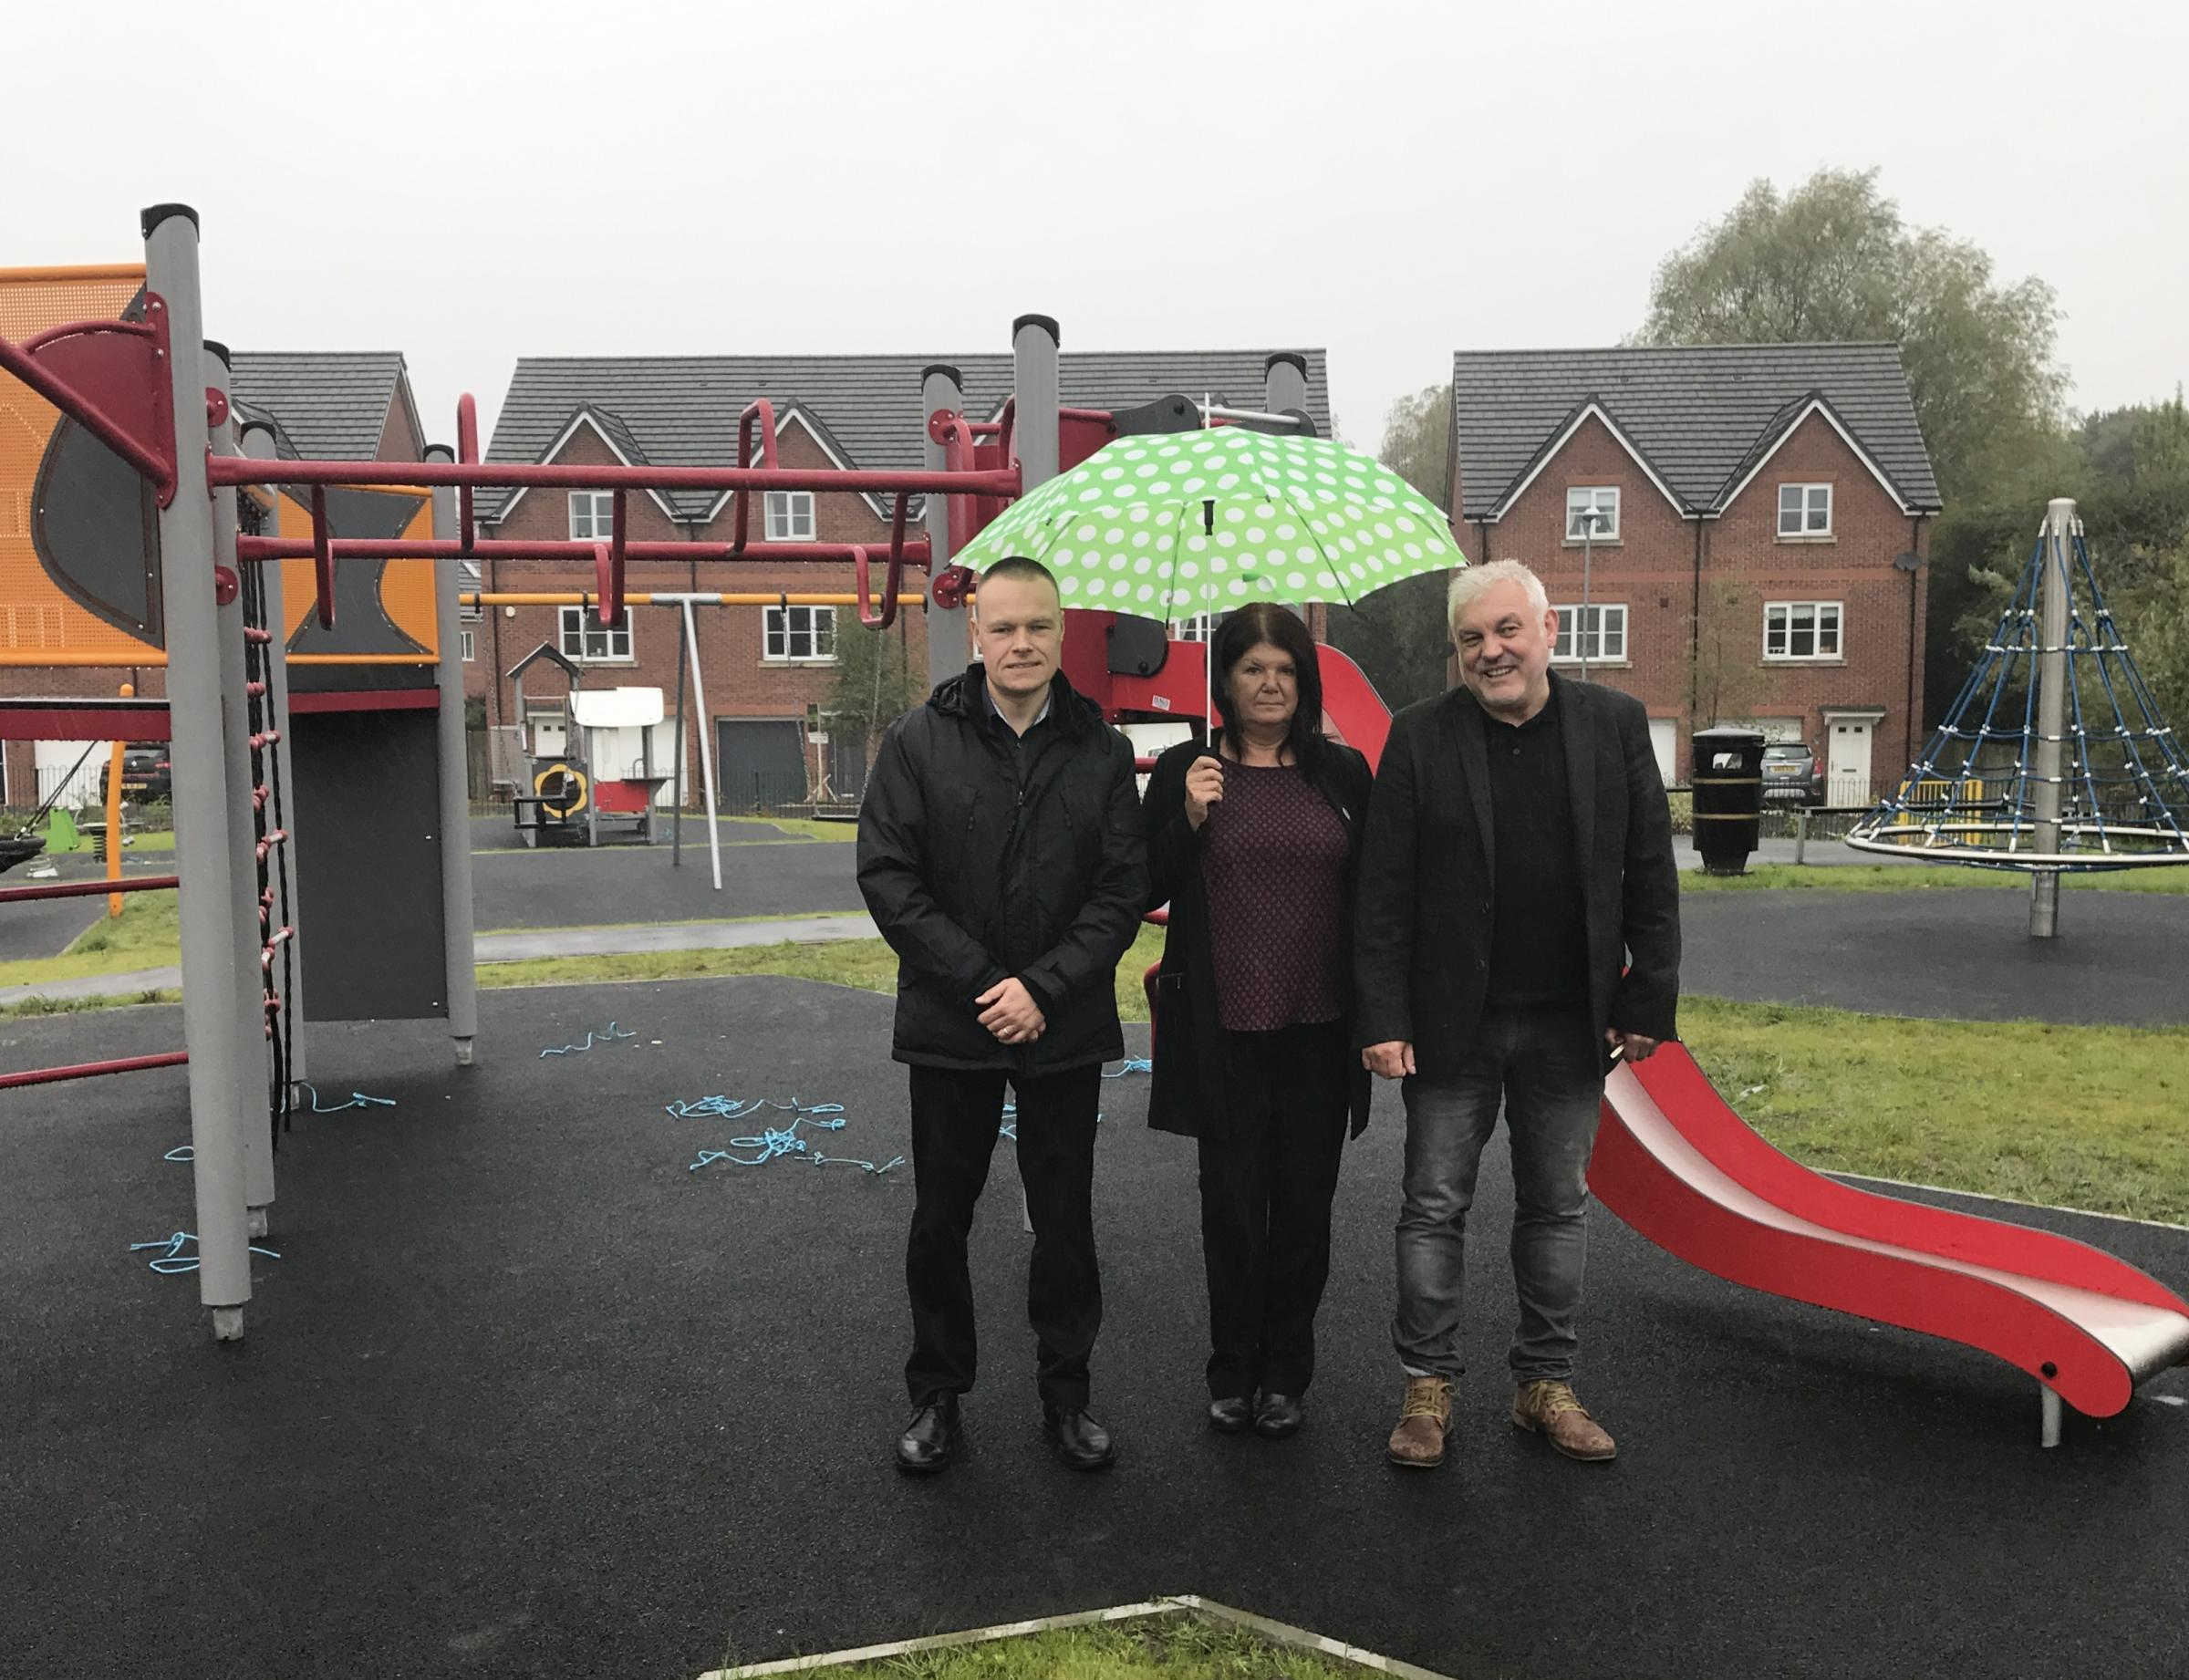 Councillors Stephen Pickup, Ann Cunliffe, and Mike Jarvis at the newly-opened play area in Middlebrook View, Lostock